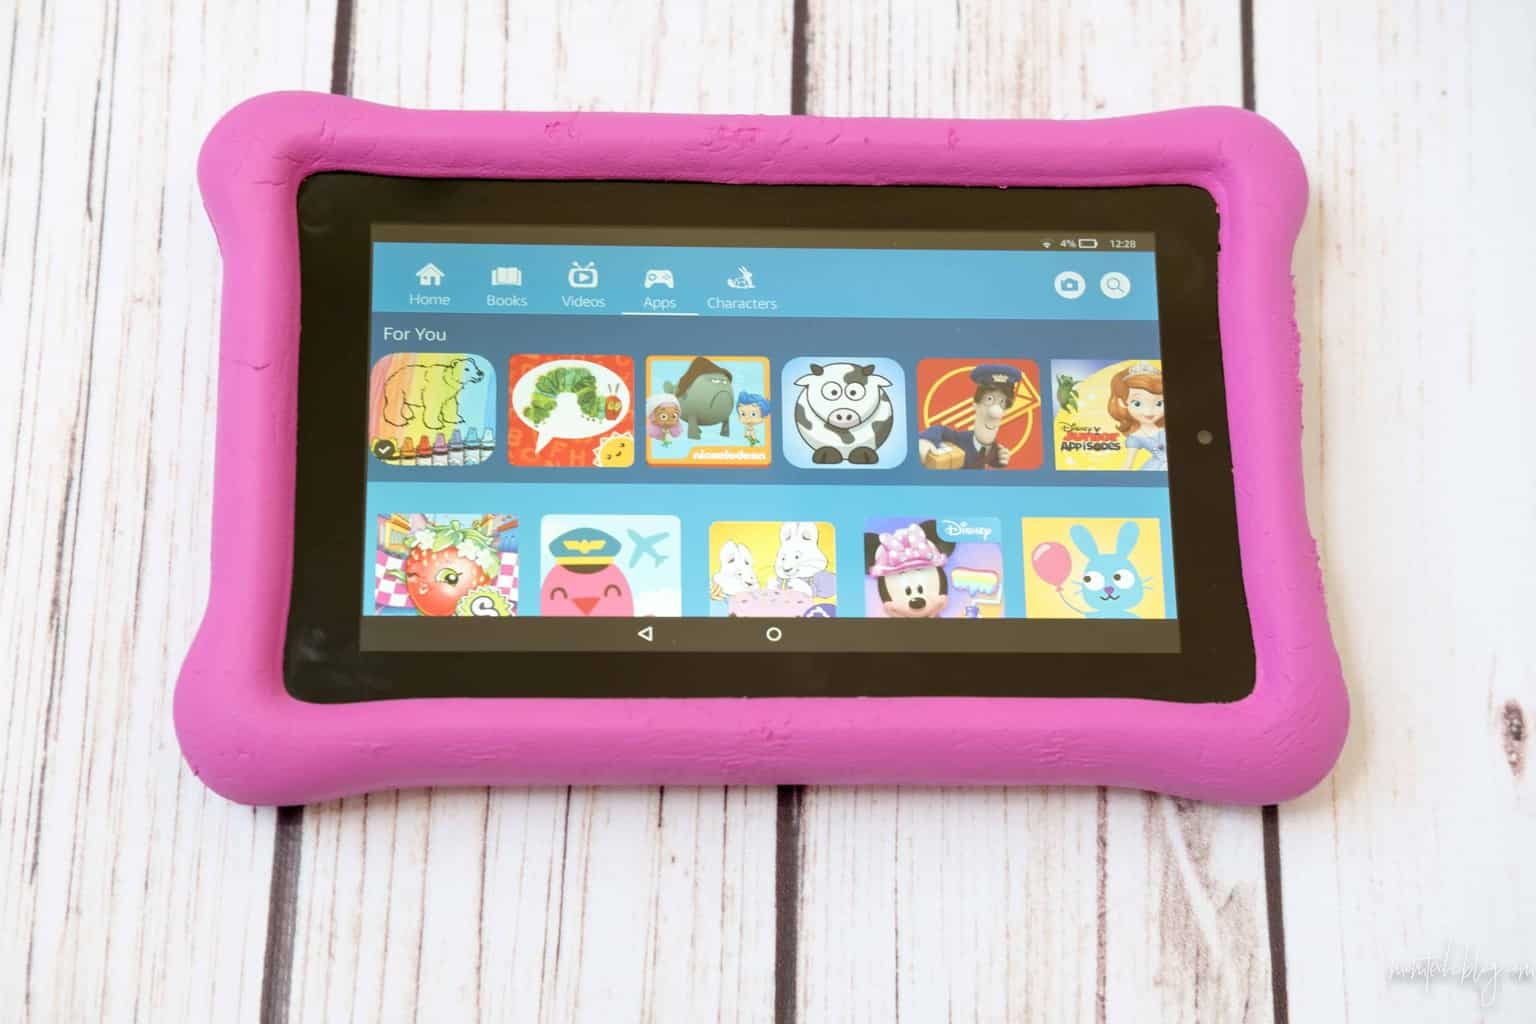 Cheapest Time of Year to Buy an Amazon Fire HD Tablet - Mom Tech Blog